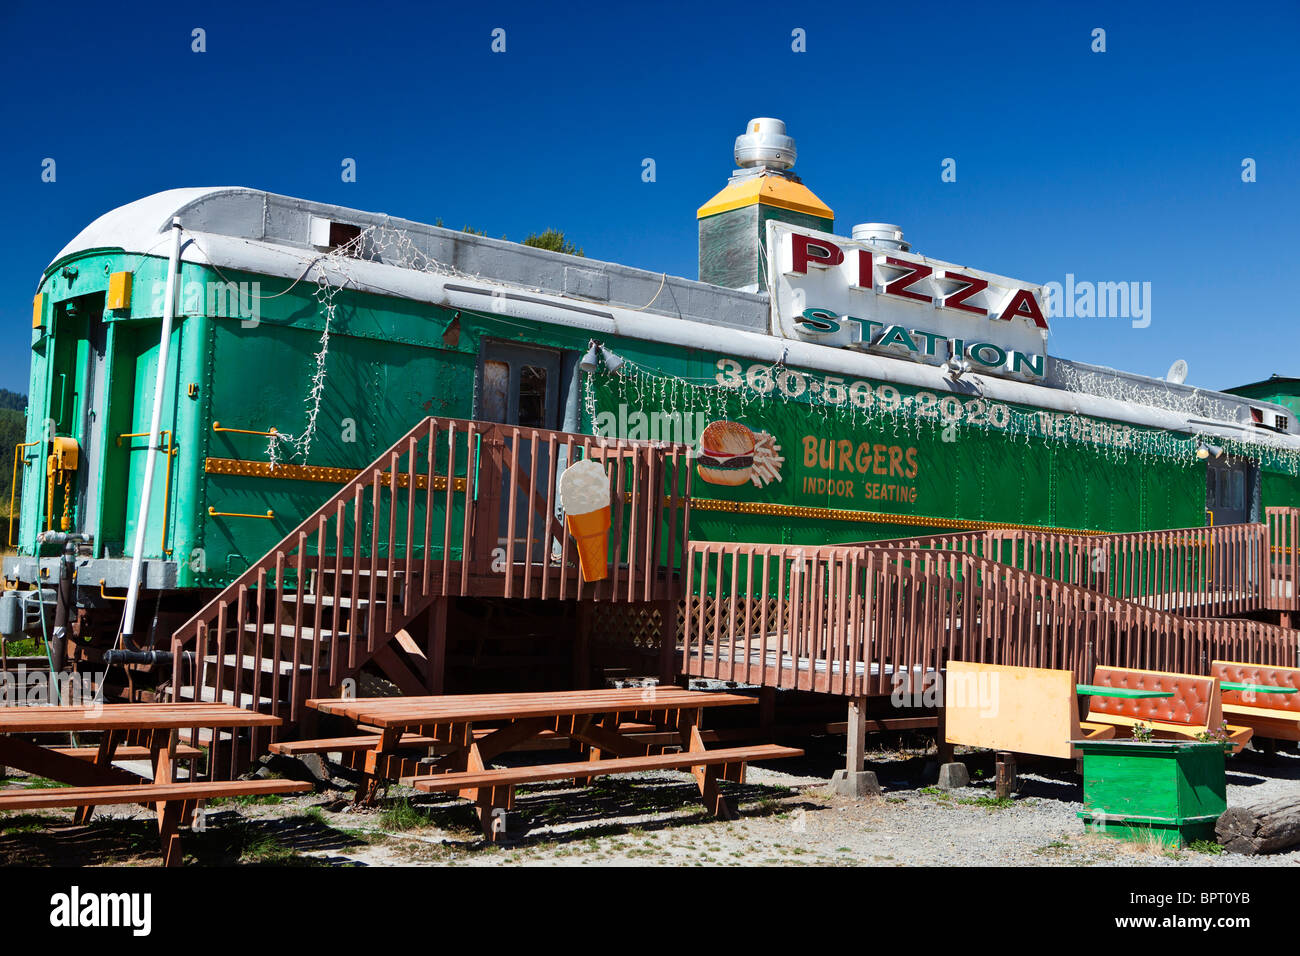 Pizza And Burger Restaurant Made Out Of Converted Railroad Car Elbe Stock Photo Alamy